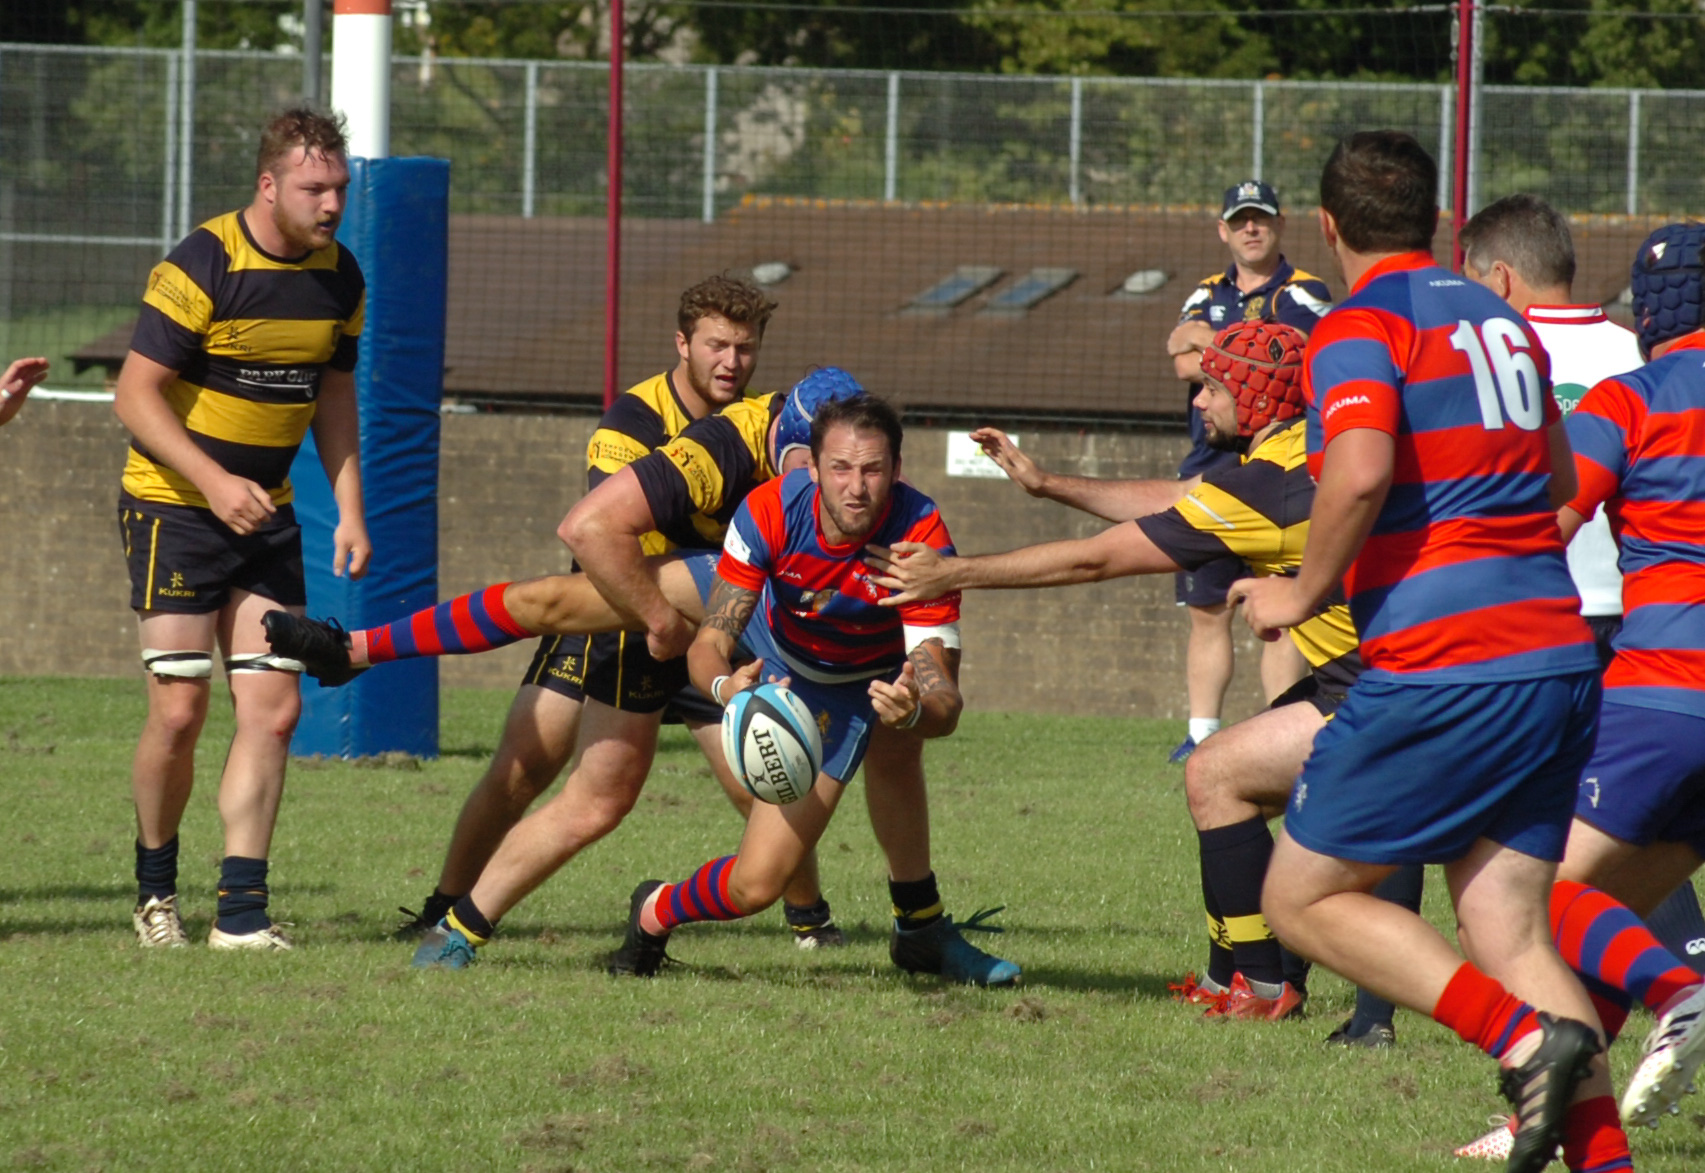 Anthony Jelf just about gets the ball away for North Bristol against Old Colstonians last Saturday. Pic: Steve Richards